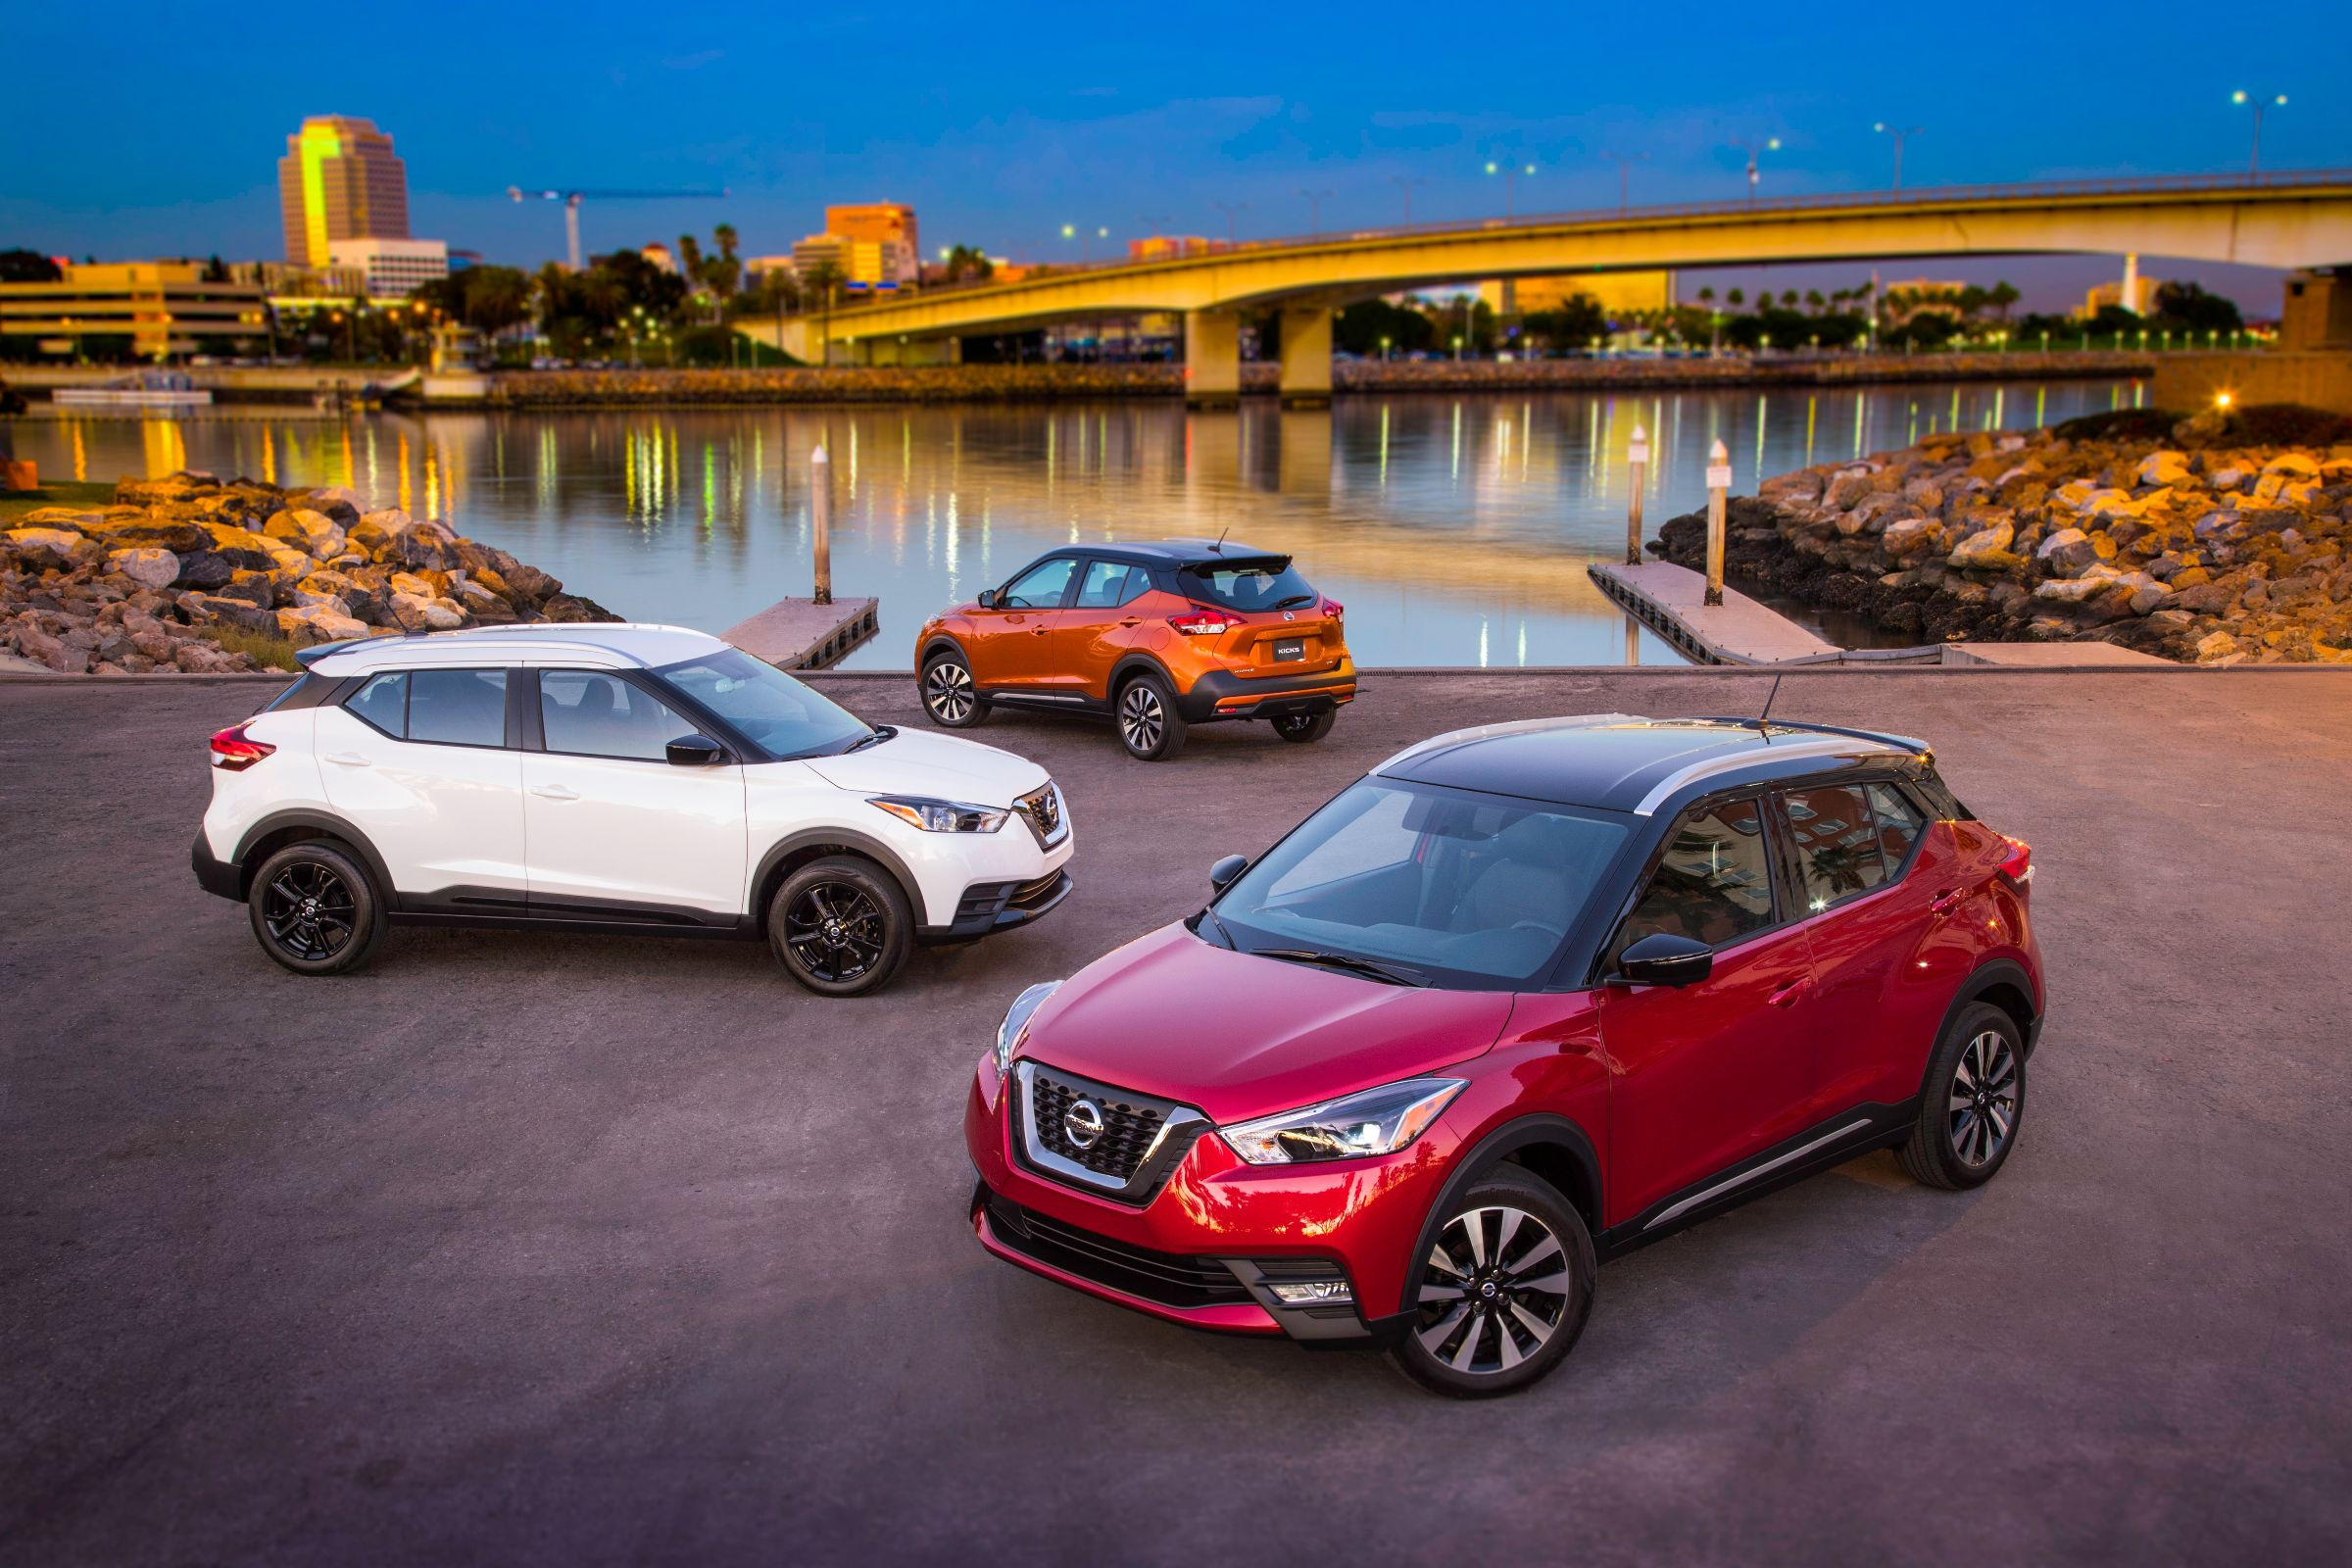 The All New 2018 Nissan Kicks, The Newest Entry In The Fast Growing  Affordable Compact Crossover Market, Made Its North American Debut Today At  The Los ...